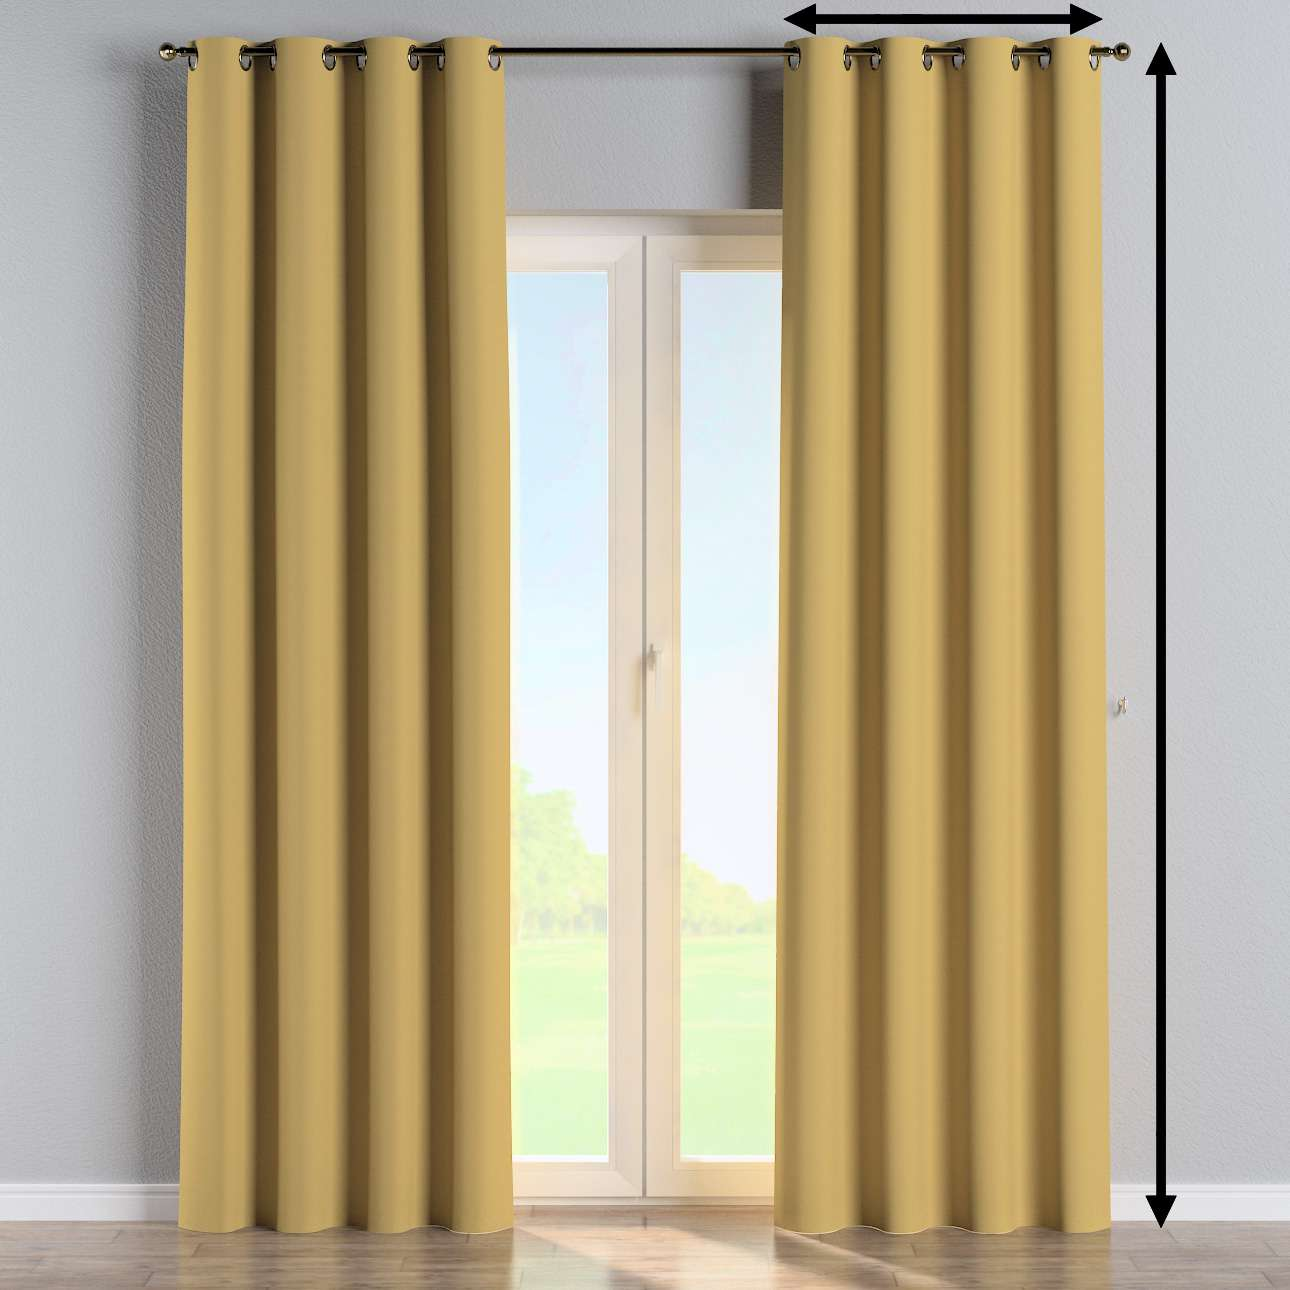 Eyelet curtain in collection Panama Cotton, fabric: 702-41